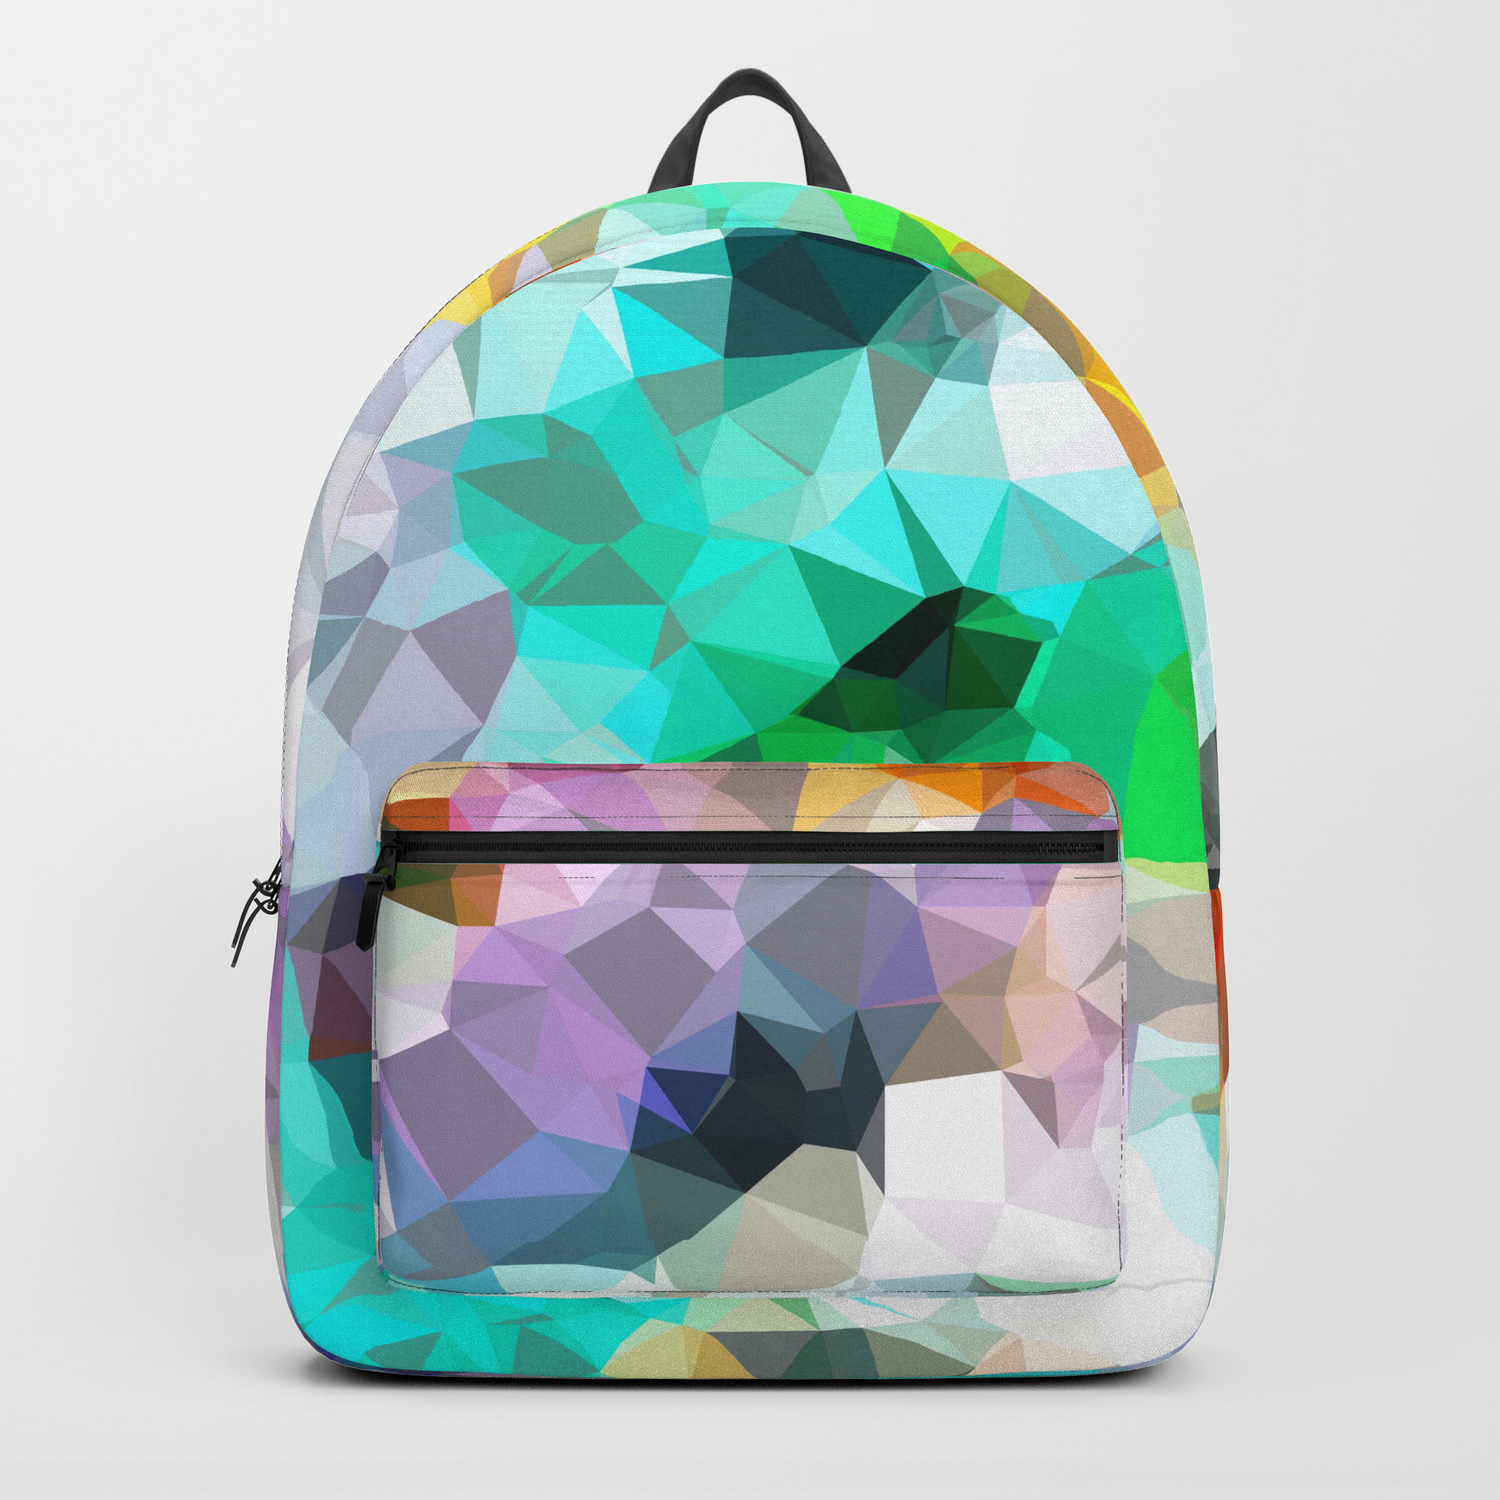 psychedelic geometric triangle polygon pattern abstract background in green  blue yellow Backpack by timla